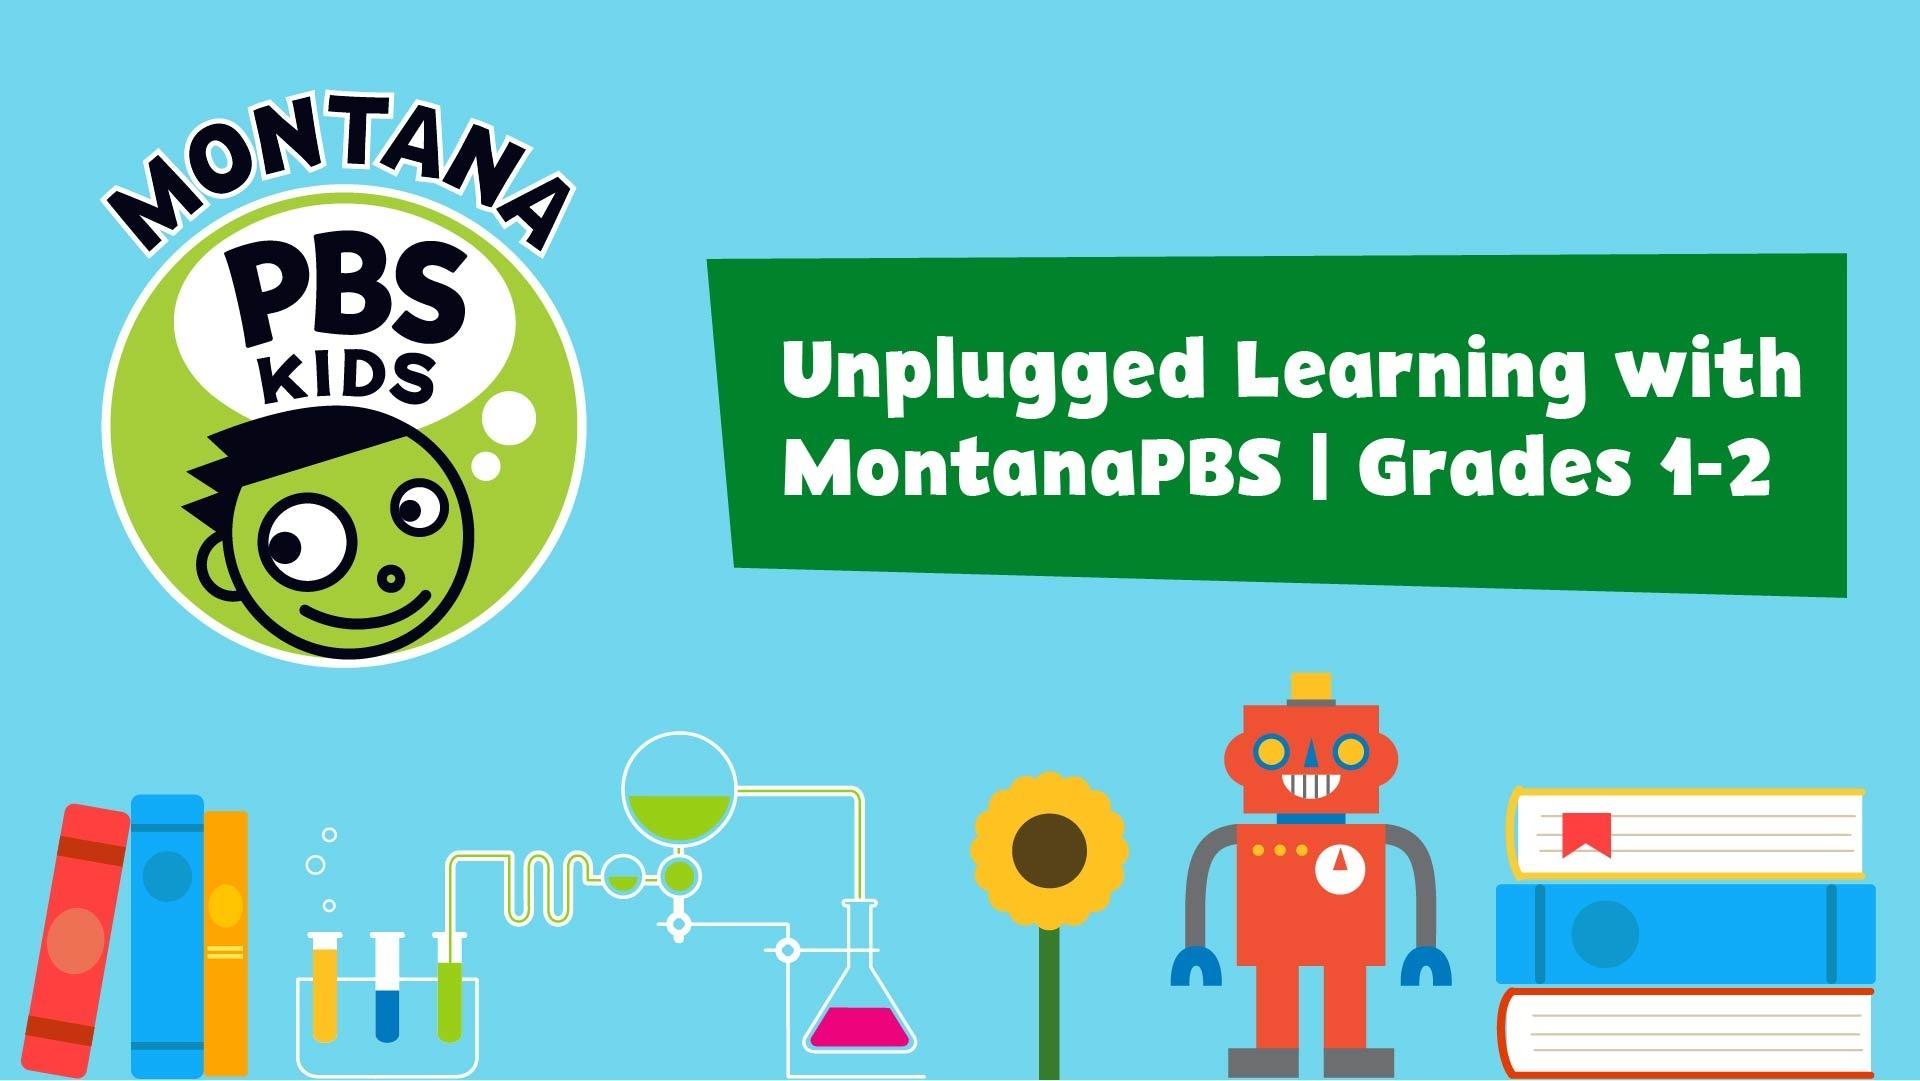 Unplugged Learning with MontanaPBS Grades 1-2